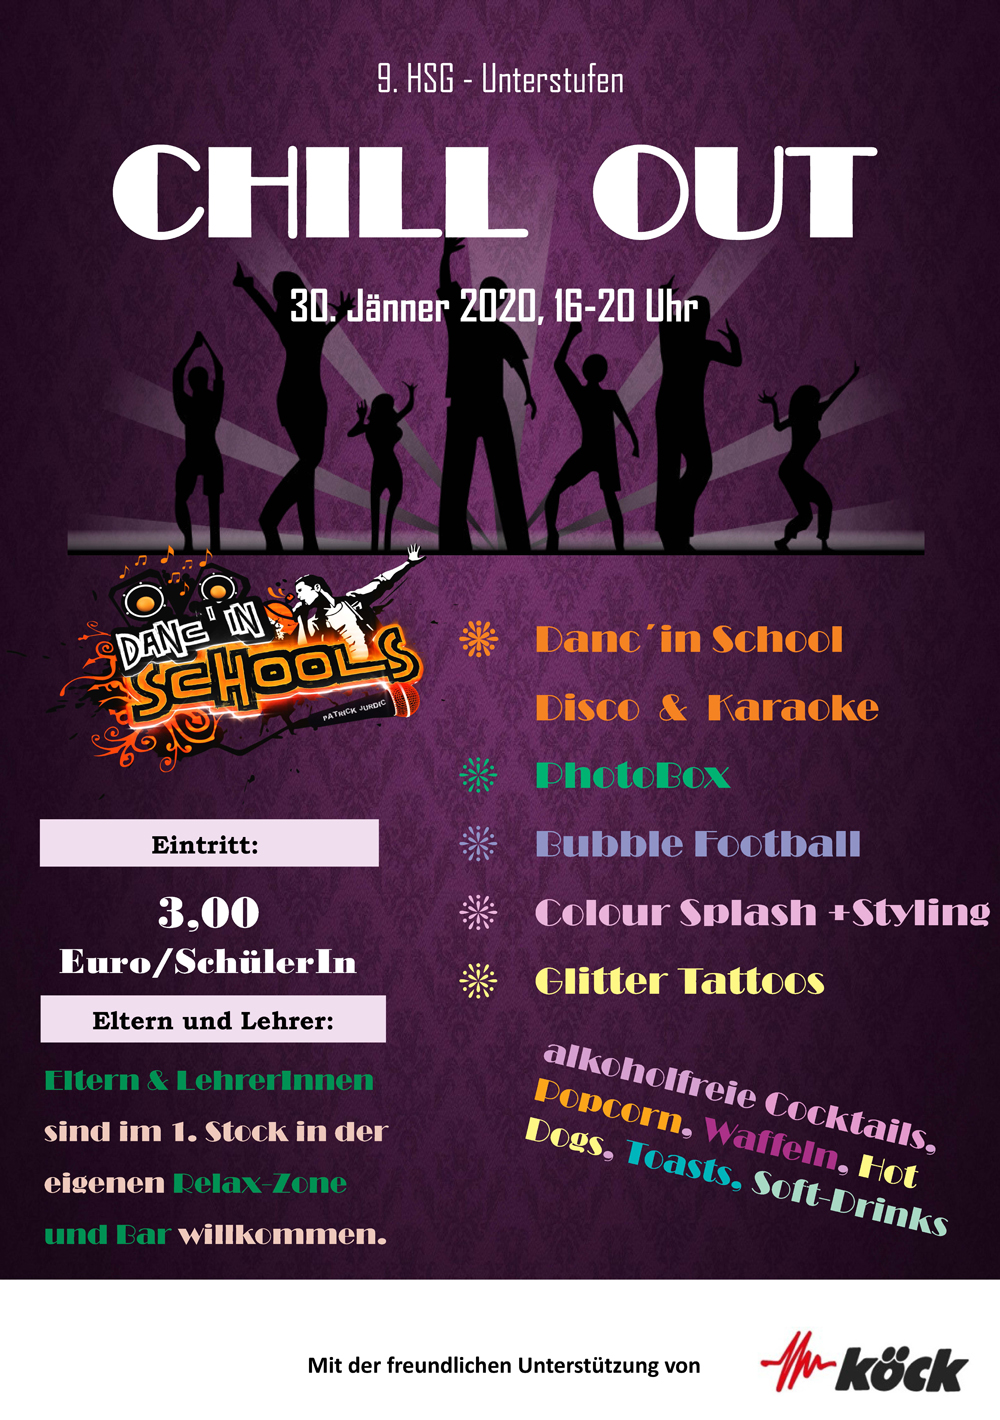 Chill Out 2020 – Save The Date!